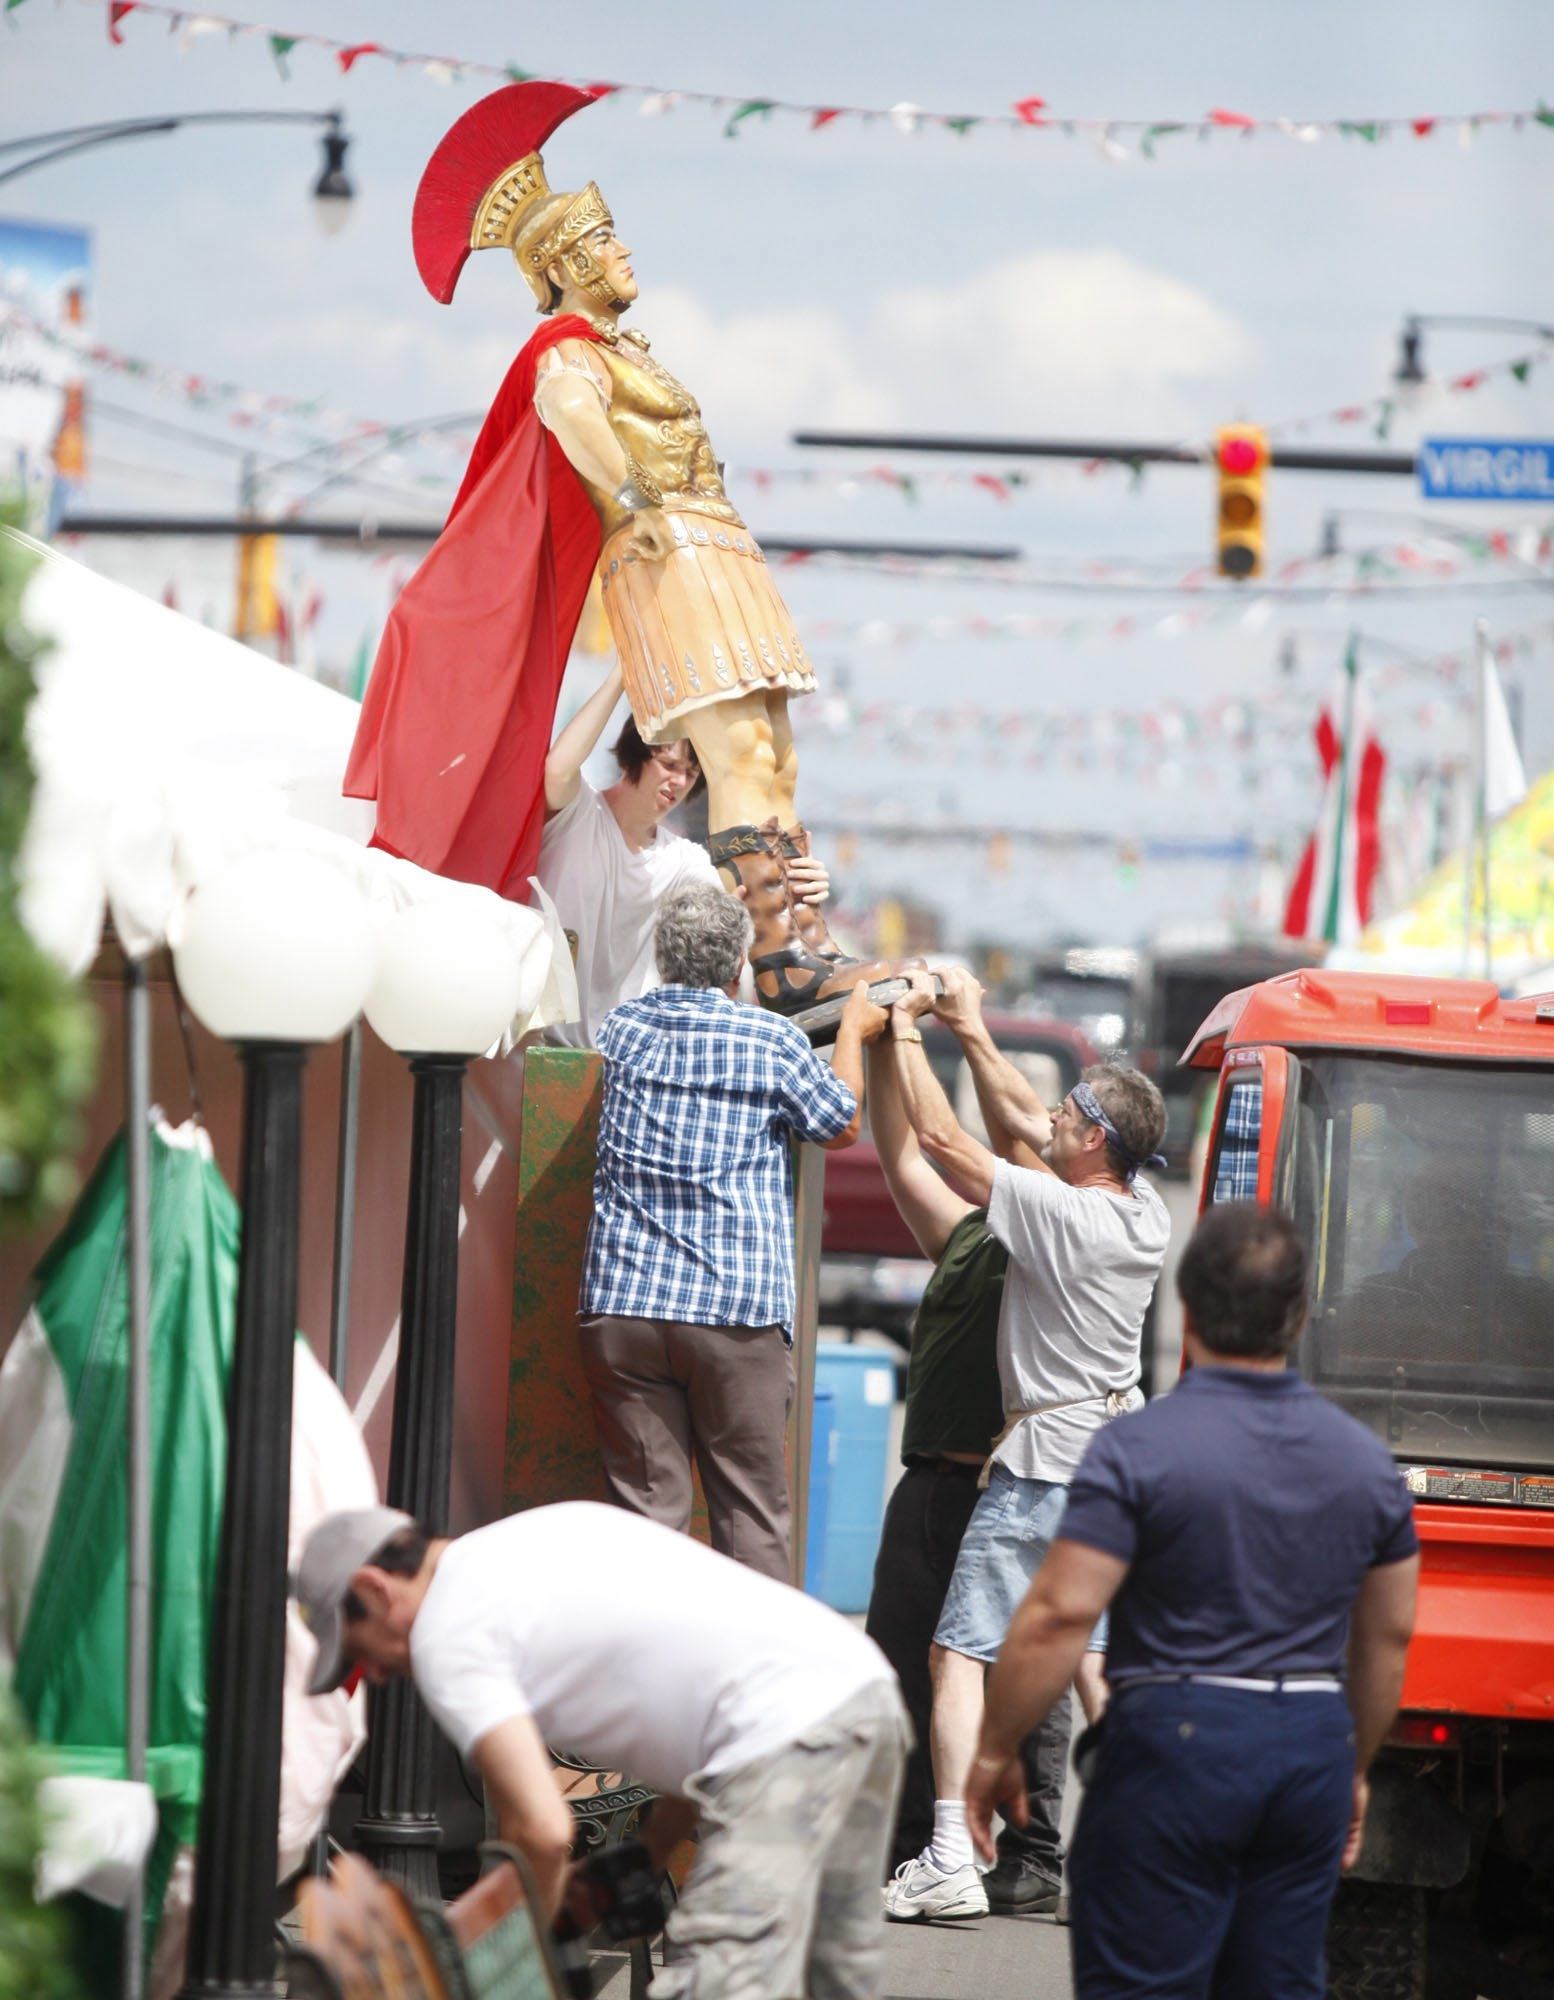 Workers set a statue into place along Hertel Avenue as preparations for the annual Italian Festival continued Wednesday.